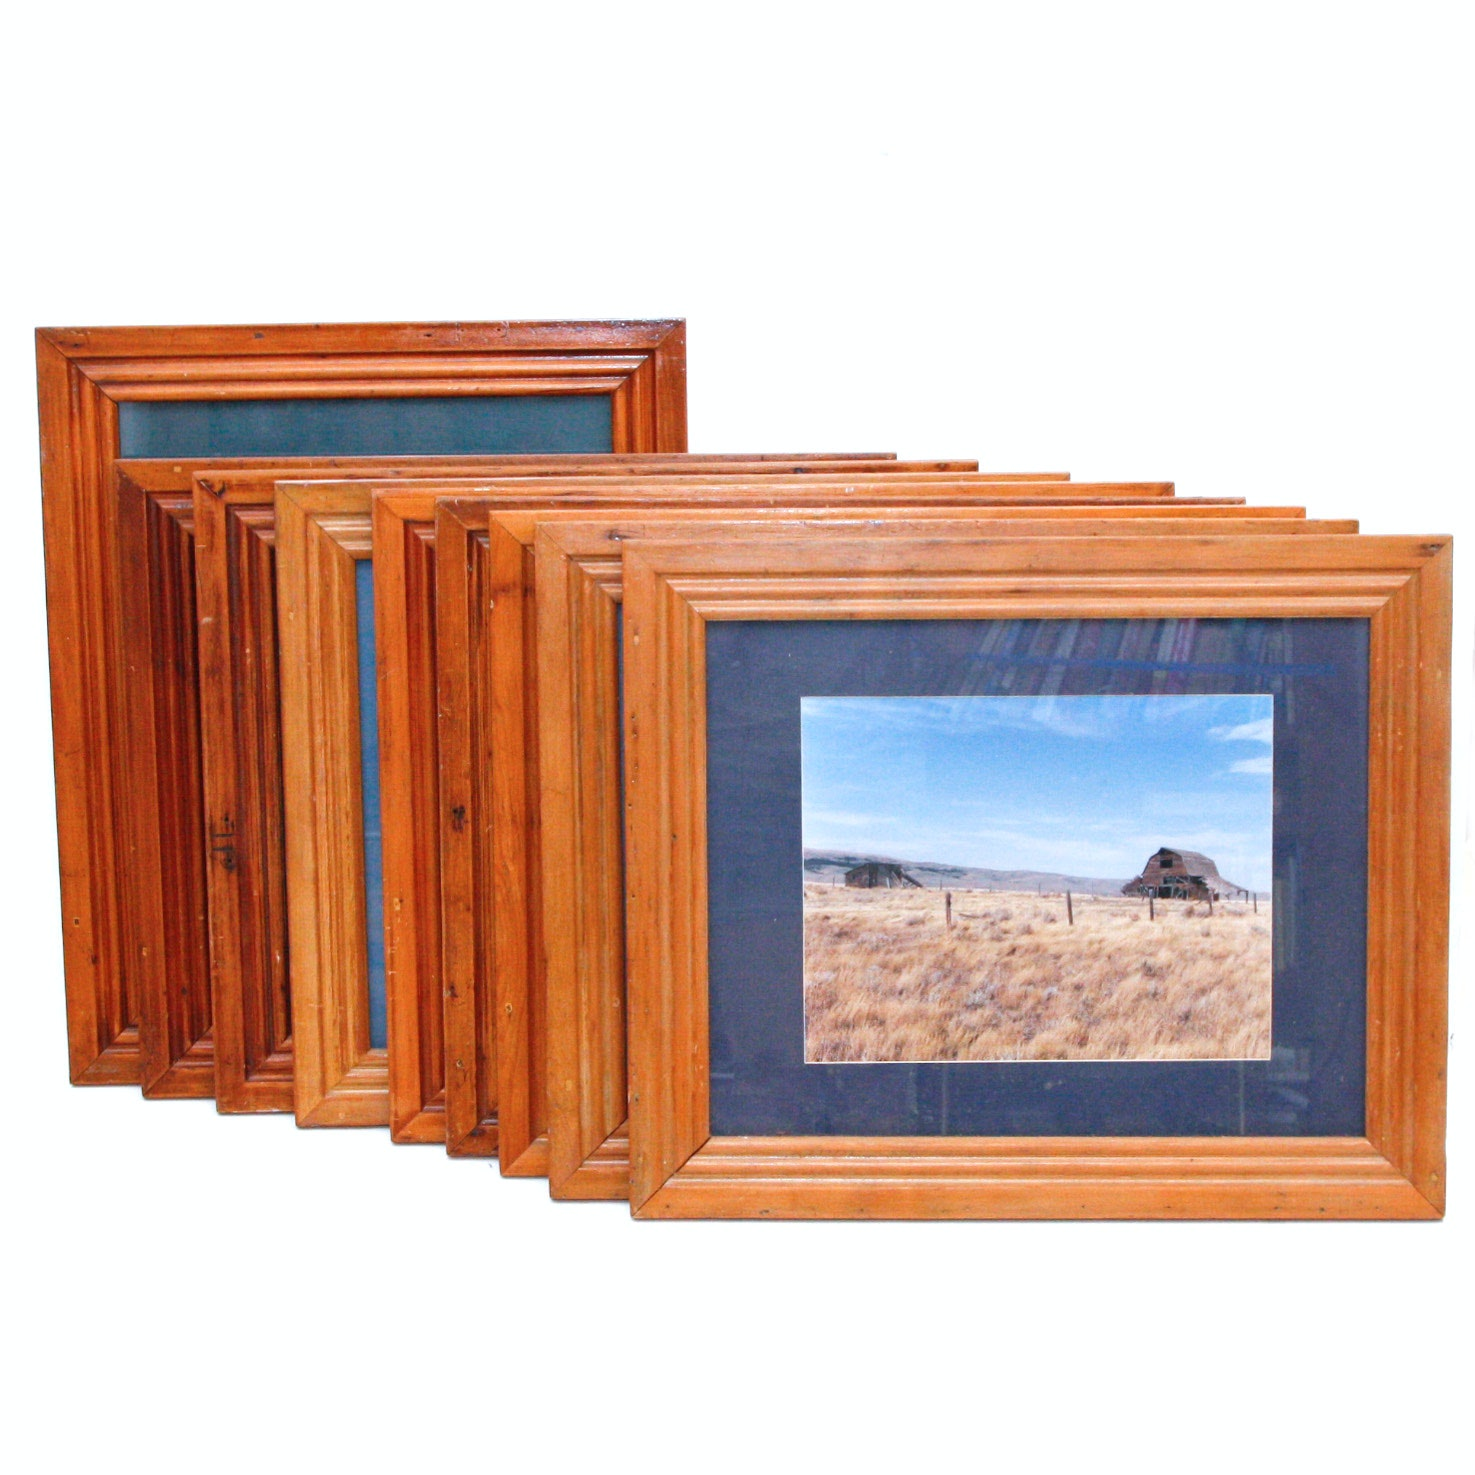 Gallery of Nature Photography in Reclaimed Wood Frames